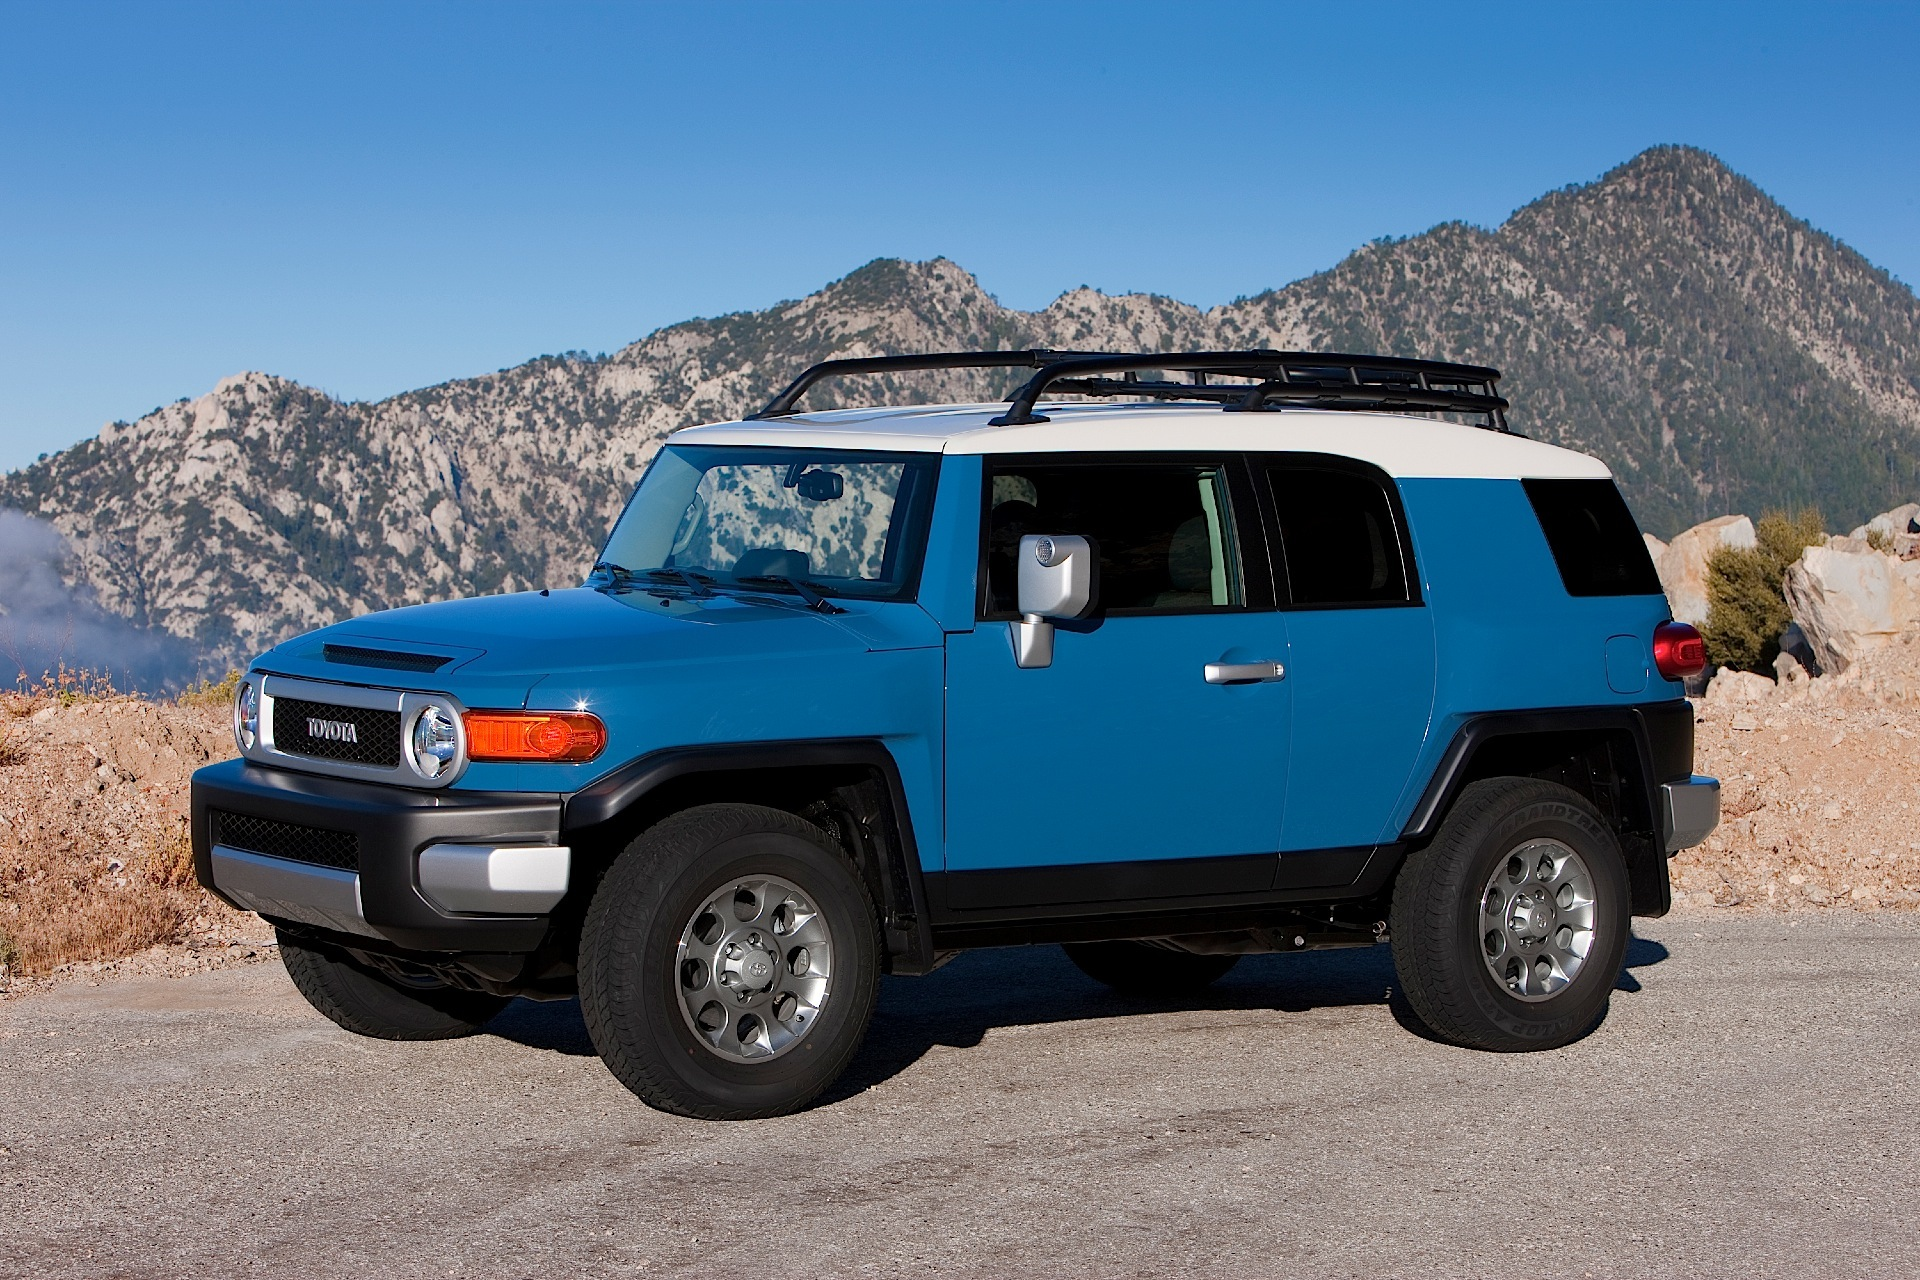 2016 Fj Cruiser >> Toyota Fj Cruiser Specs Photos 2011 2012 2013 2014